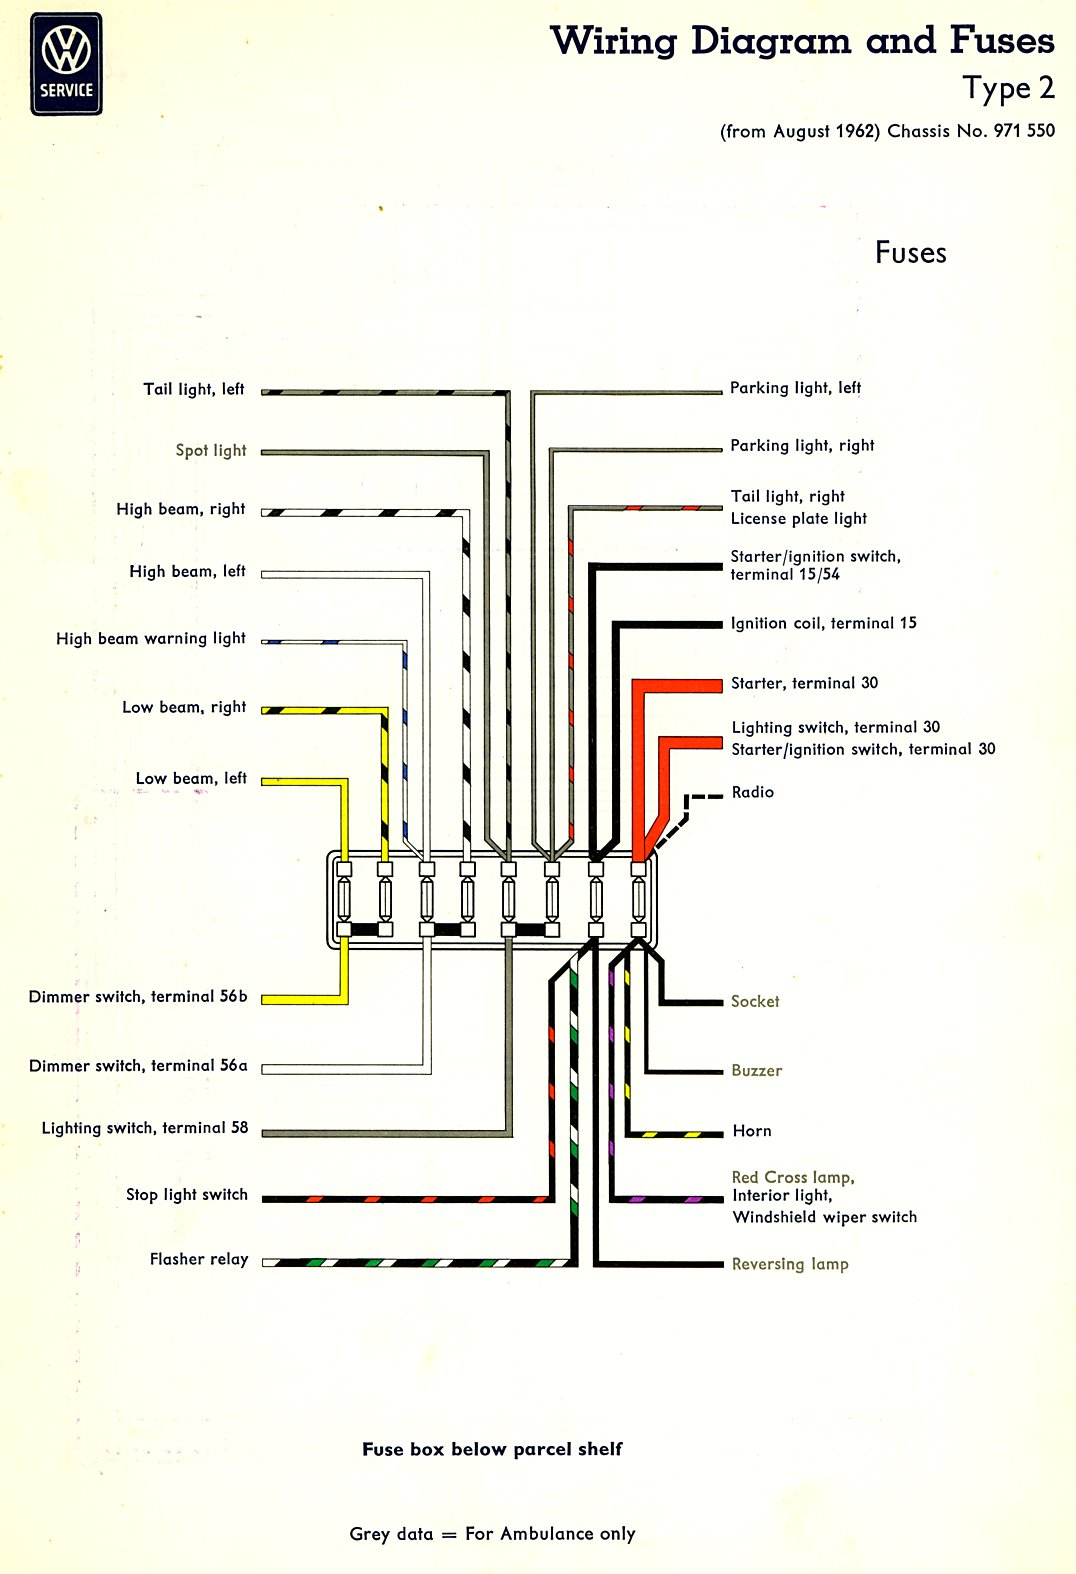 Fuse Box Wiring Diagram Schematic Bmw 7 Series Thesamba Com Type 2 Diagrams 1973